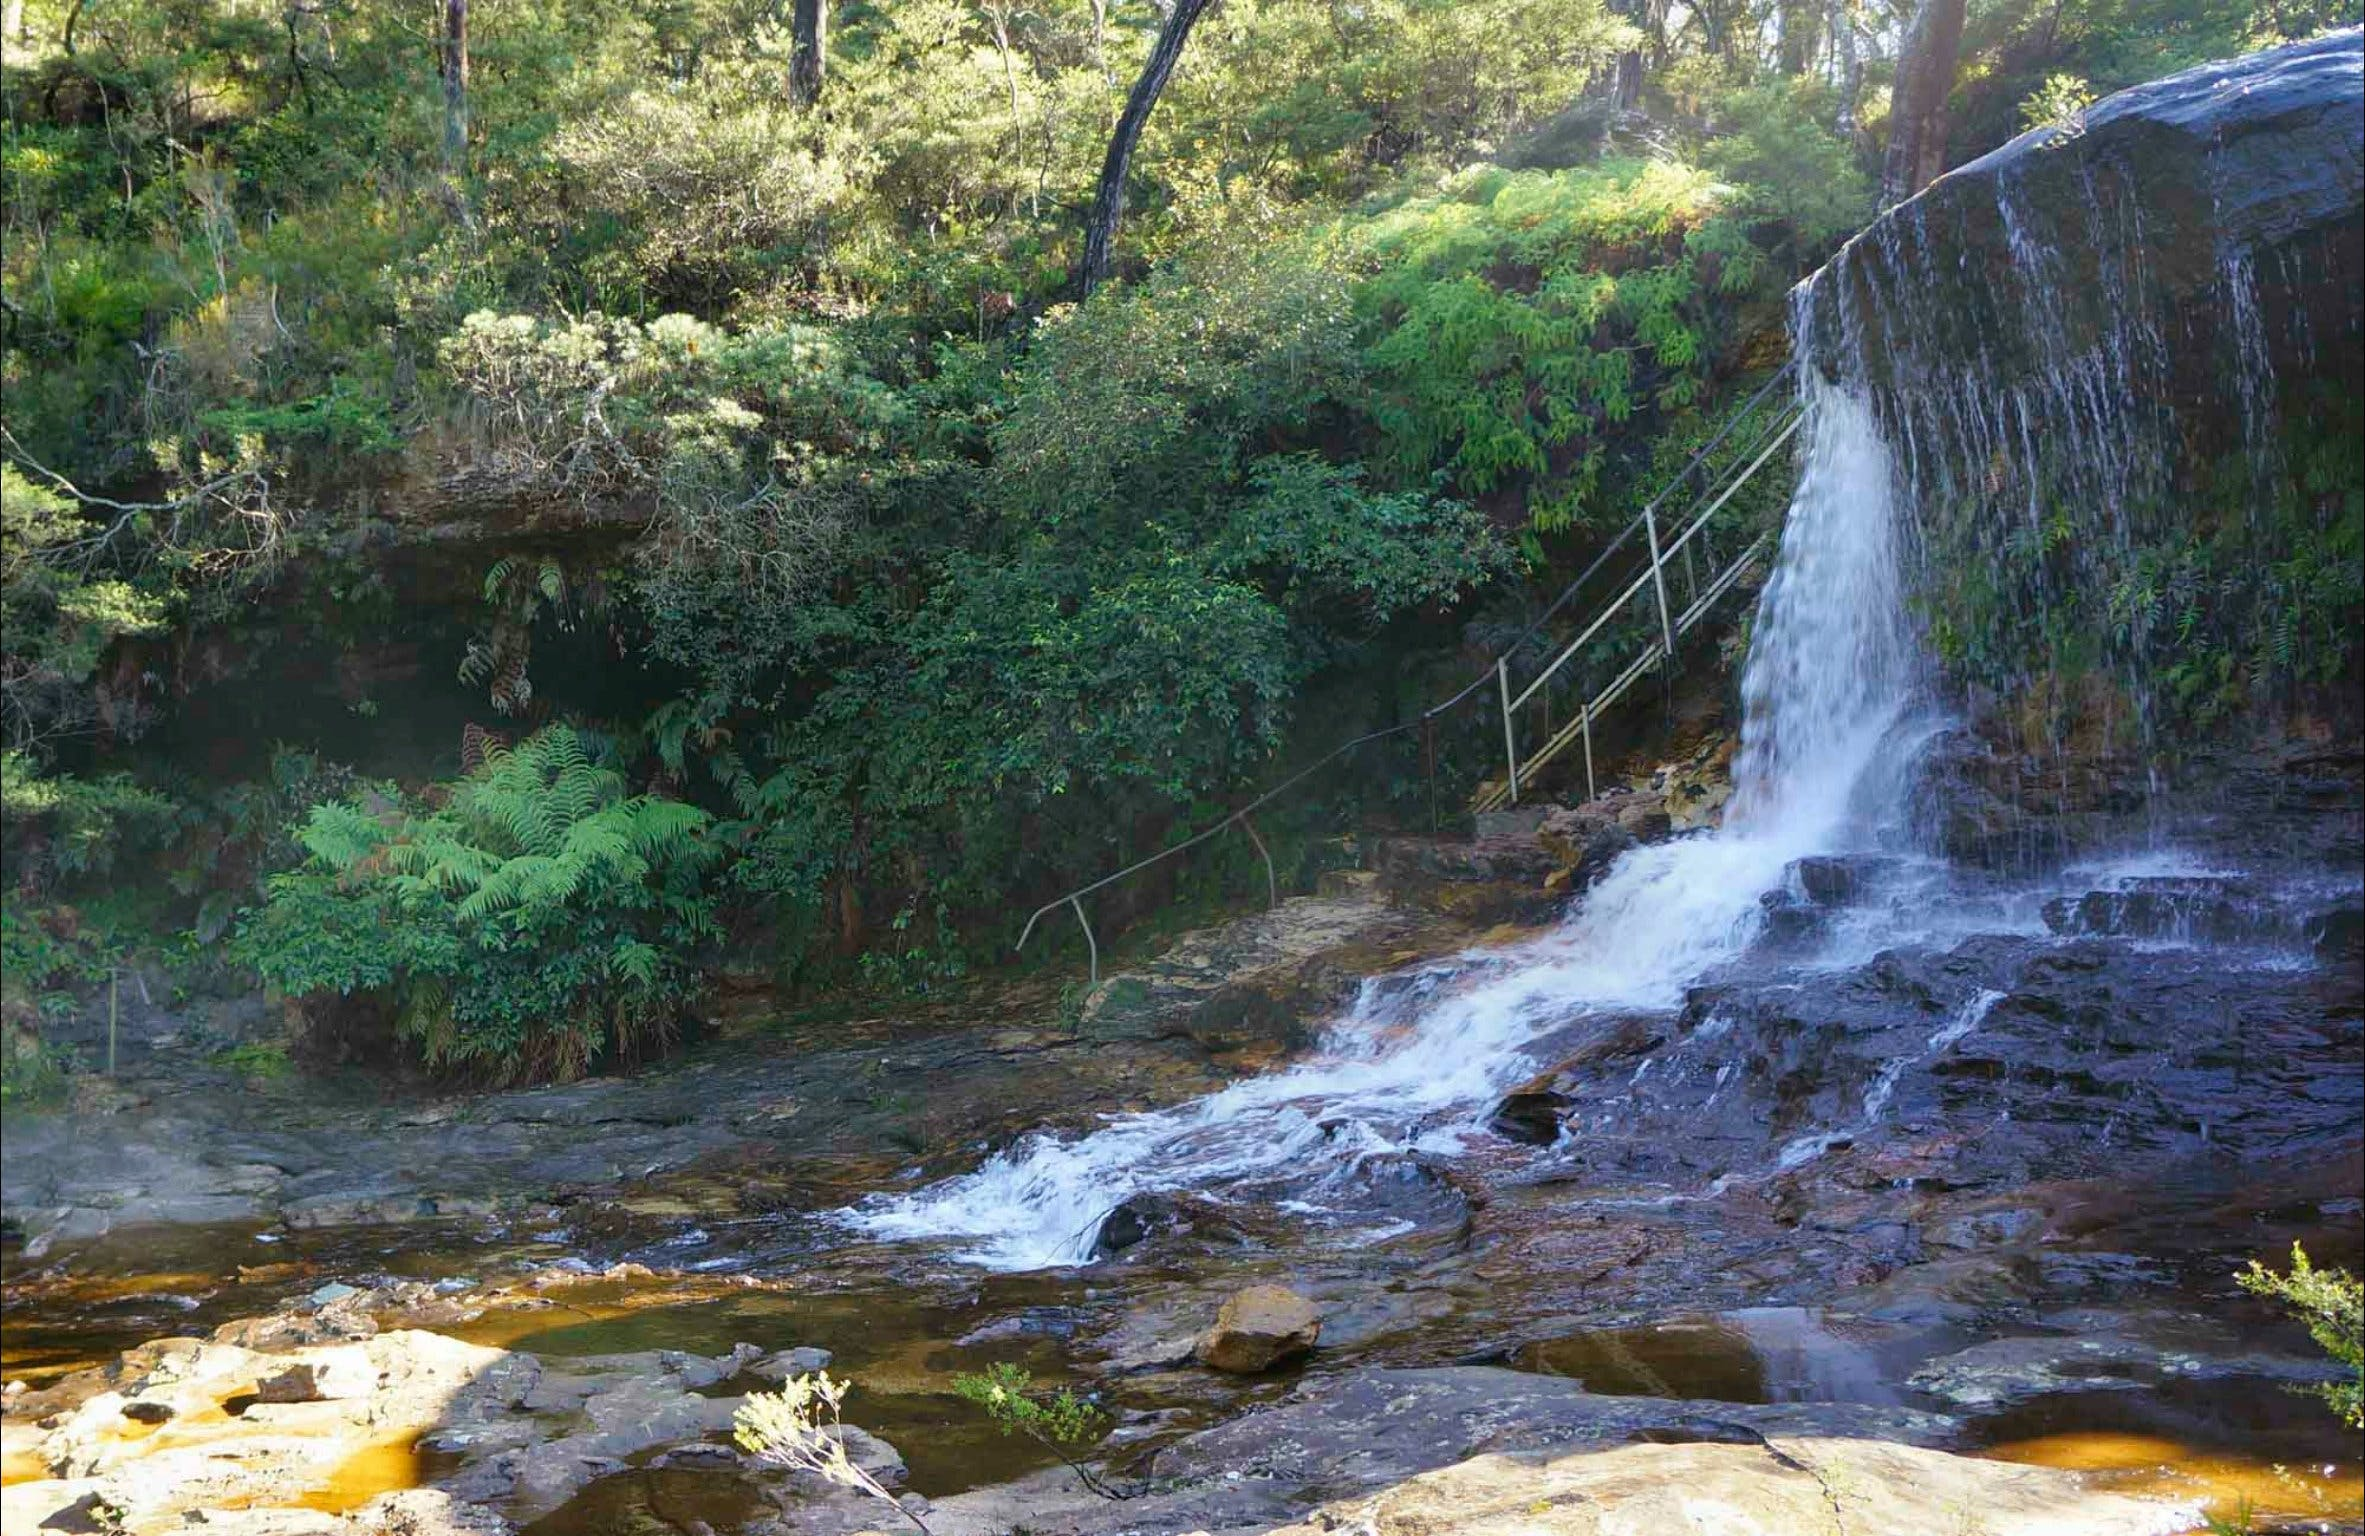 Charles Darwin walk - Accommodation Mount Tamborine